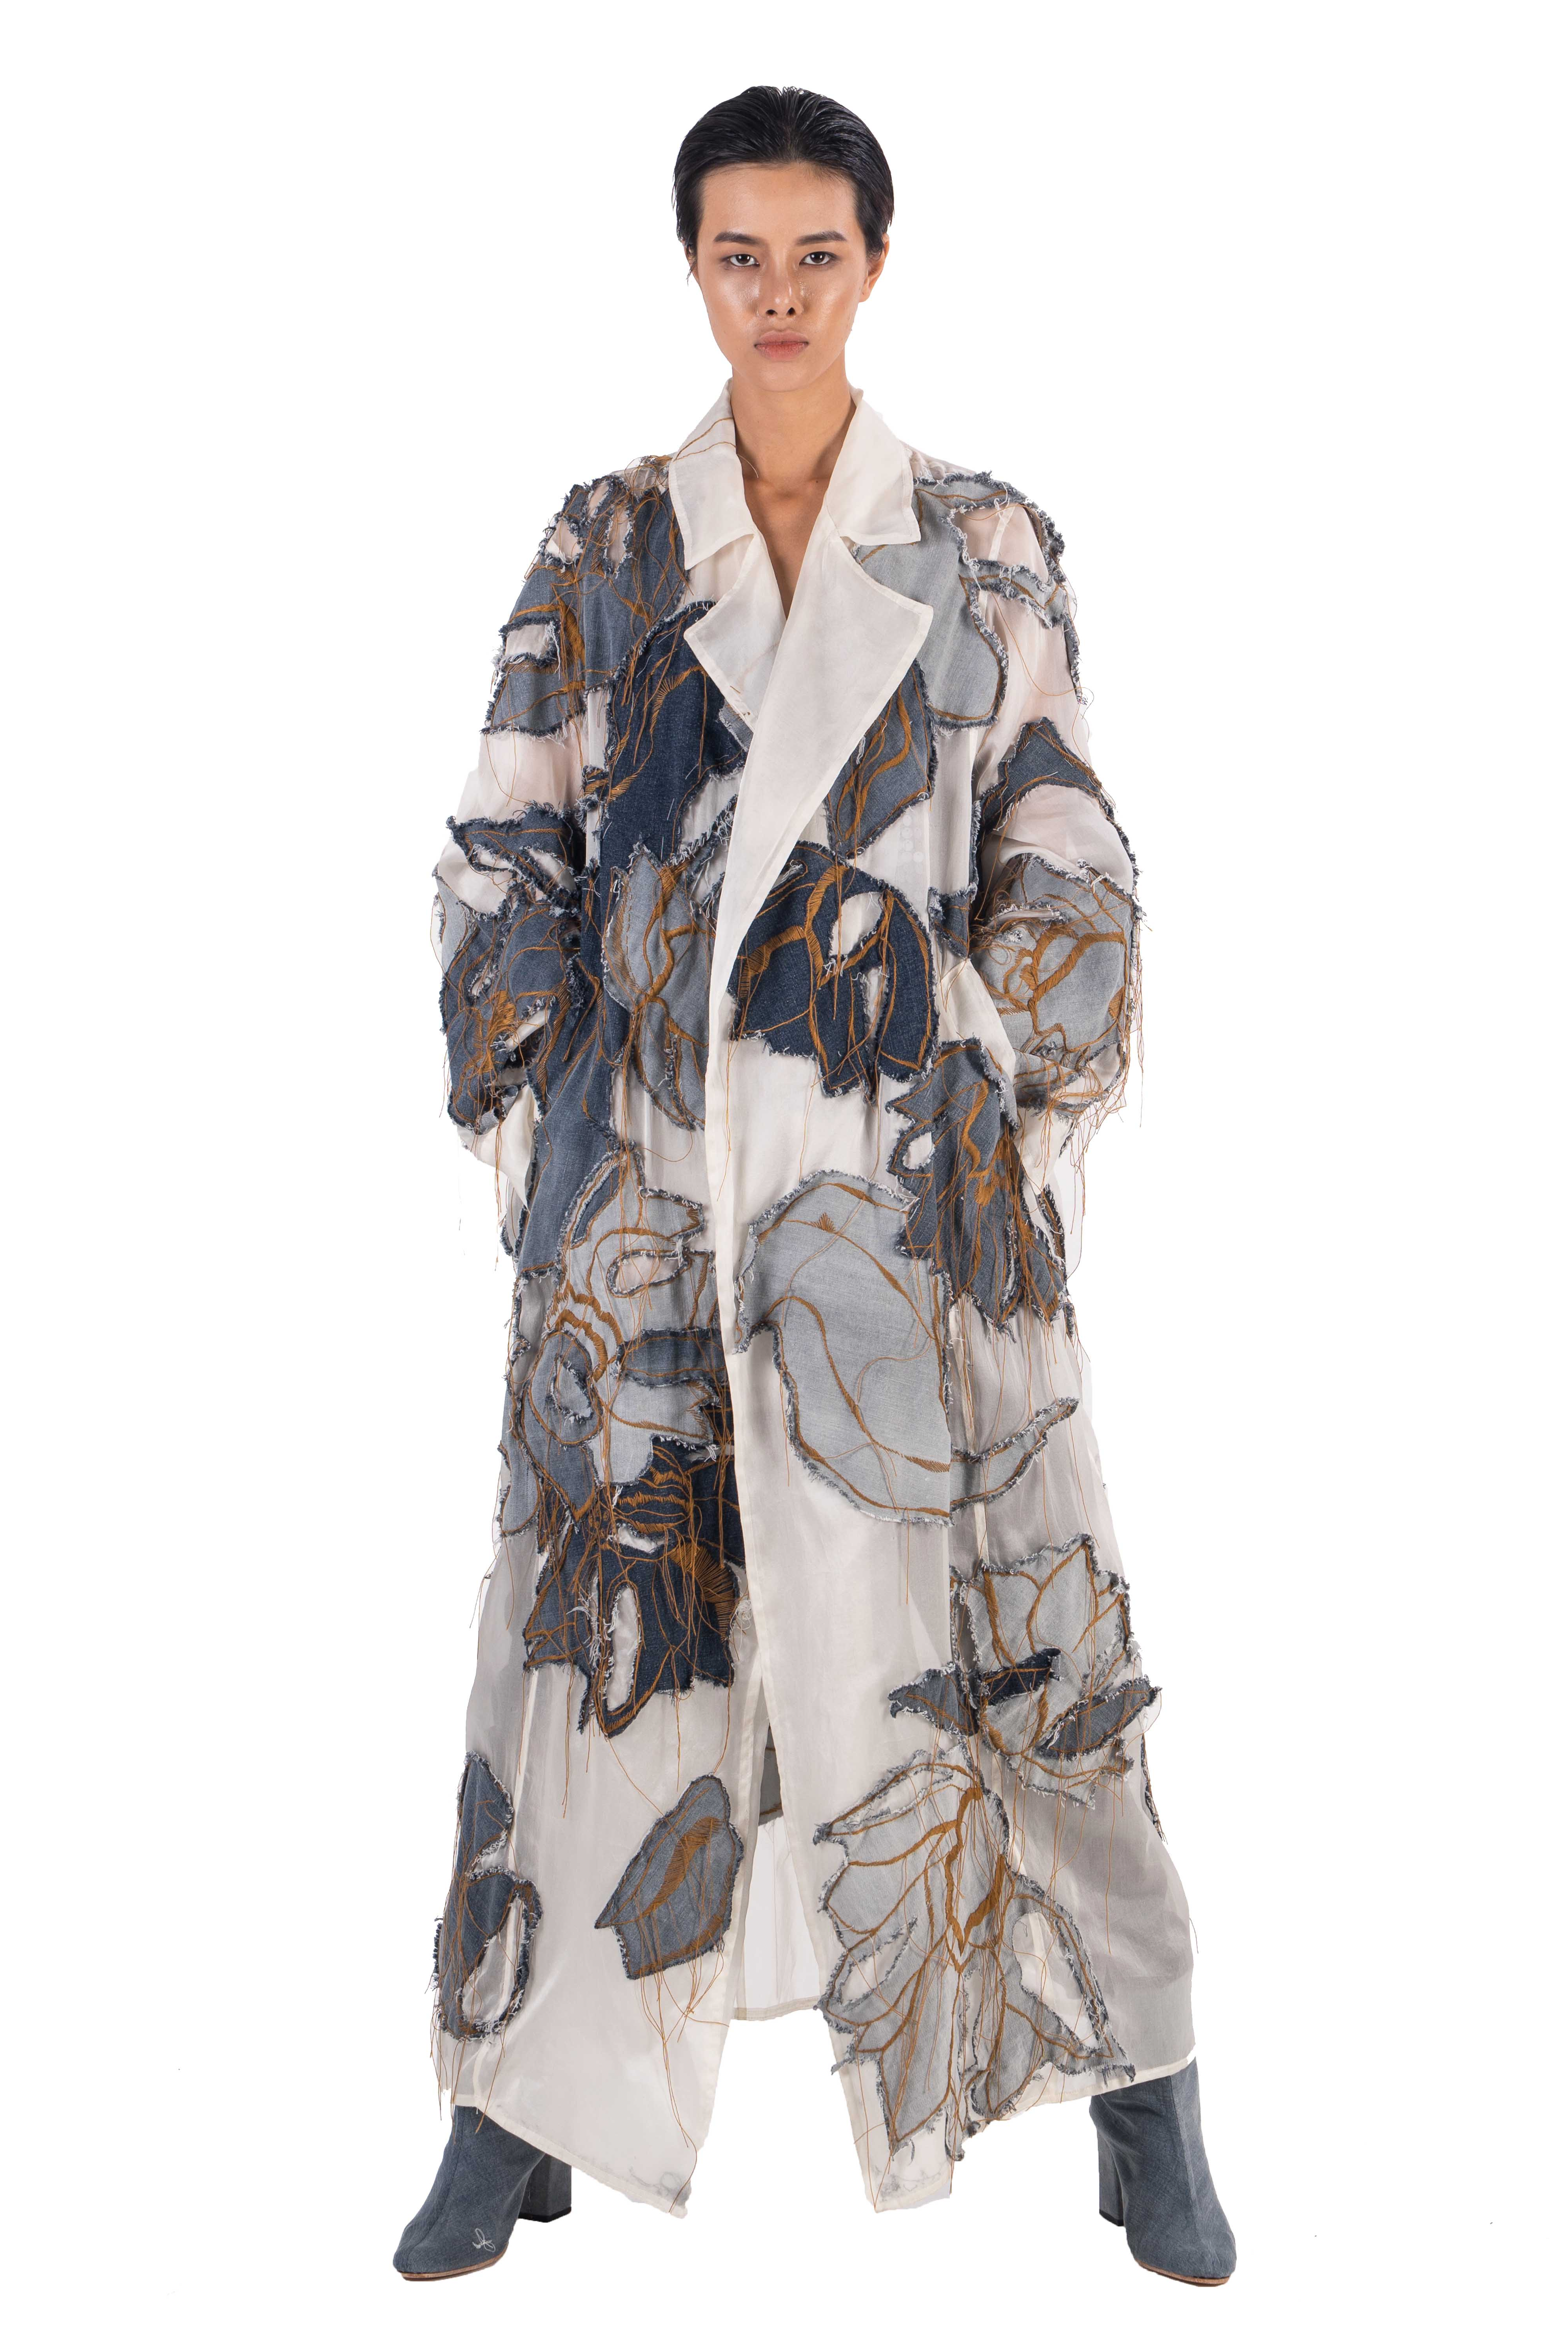 Silk organza long coat with hand embroidery and applique jean lotus flowers and leaves